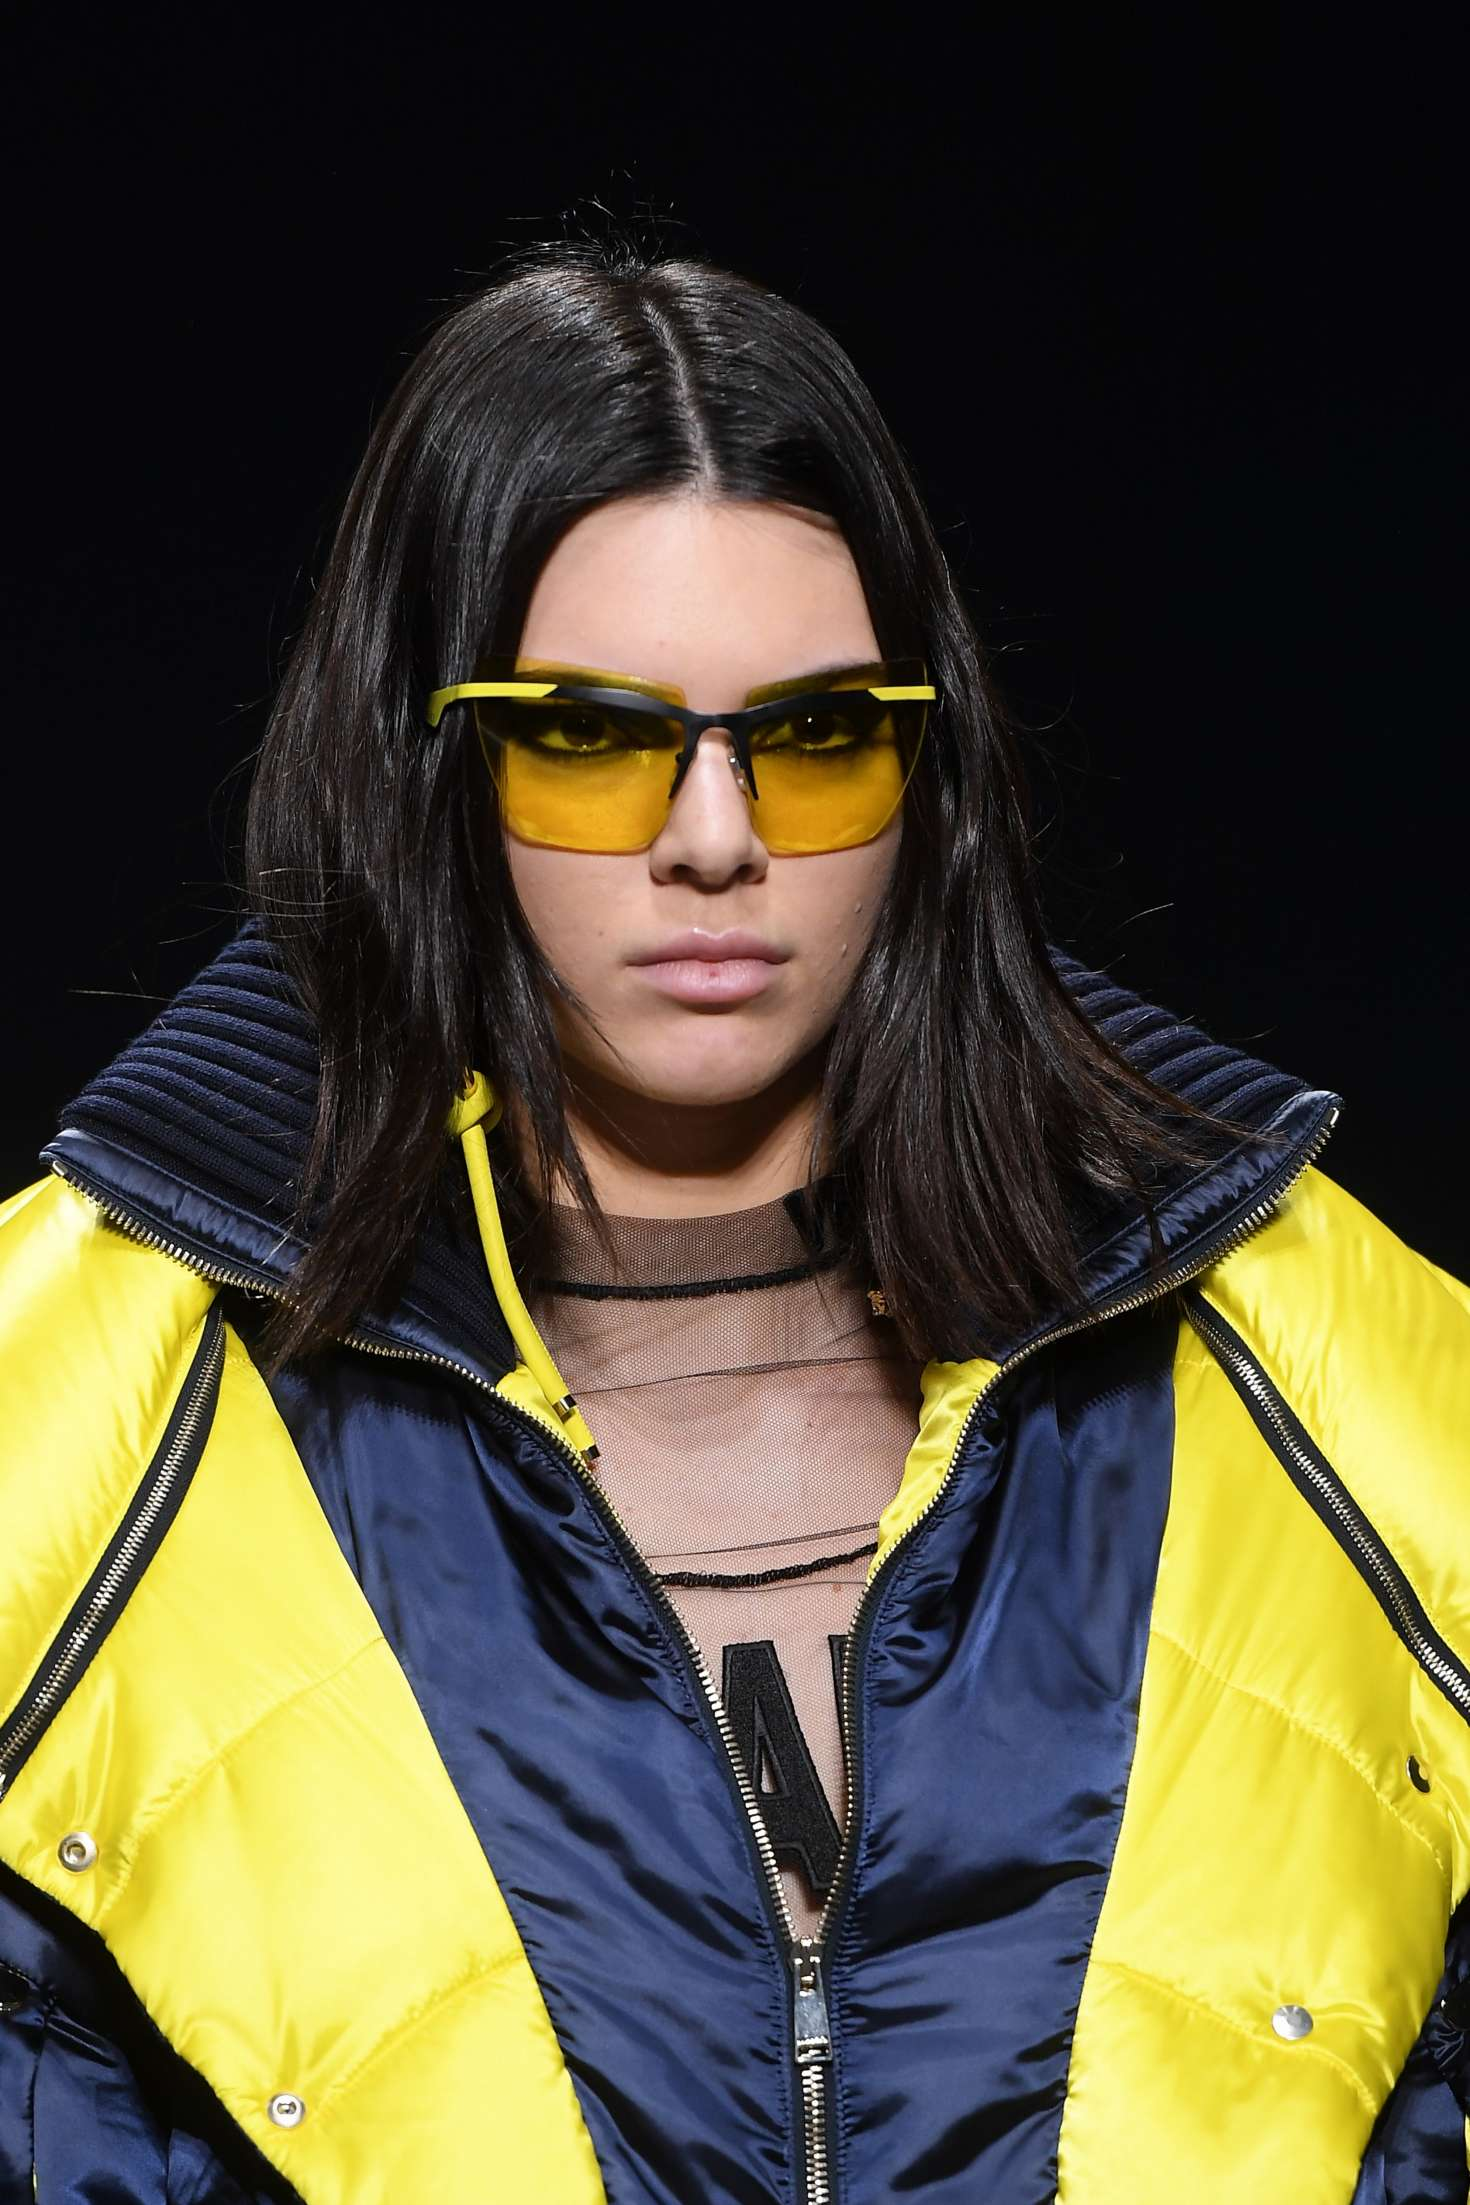 Kendall Jenner 2017 : Kendall Jenner: Versace Runway Show at MFW 2017 -01